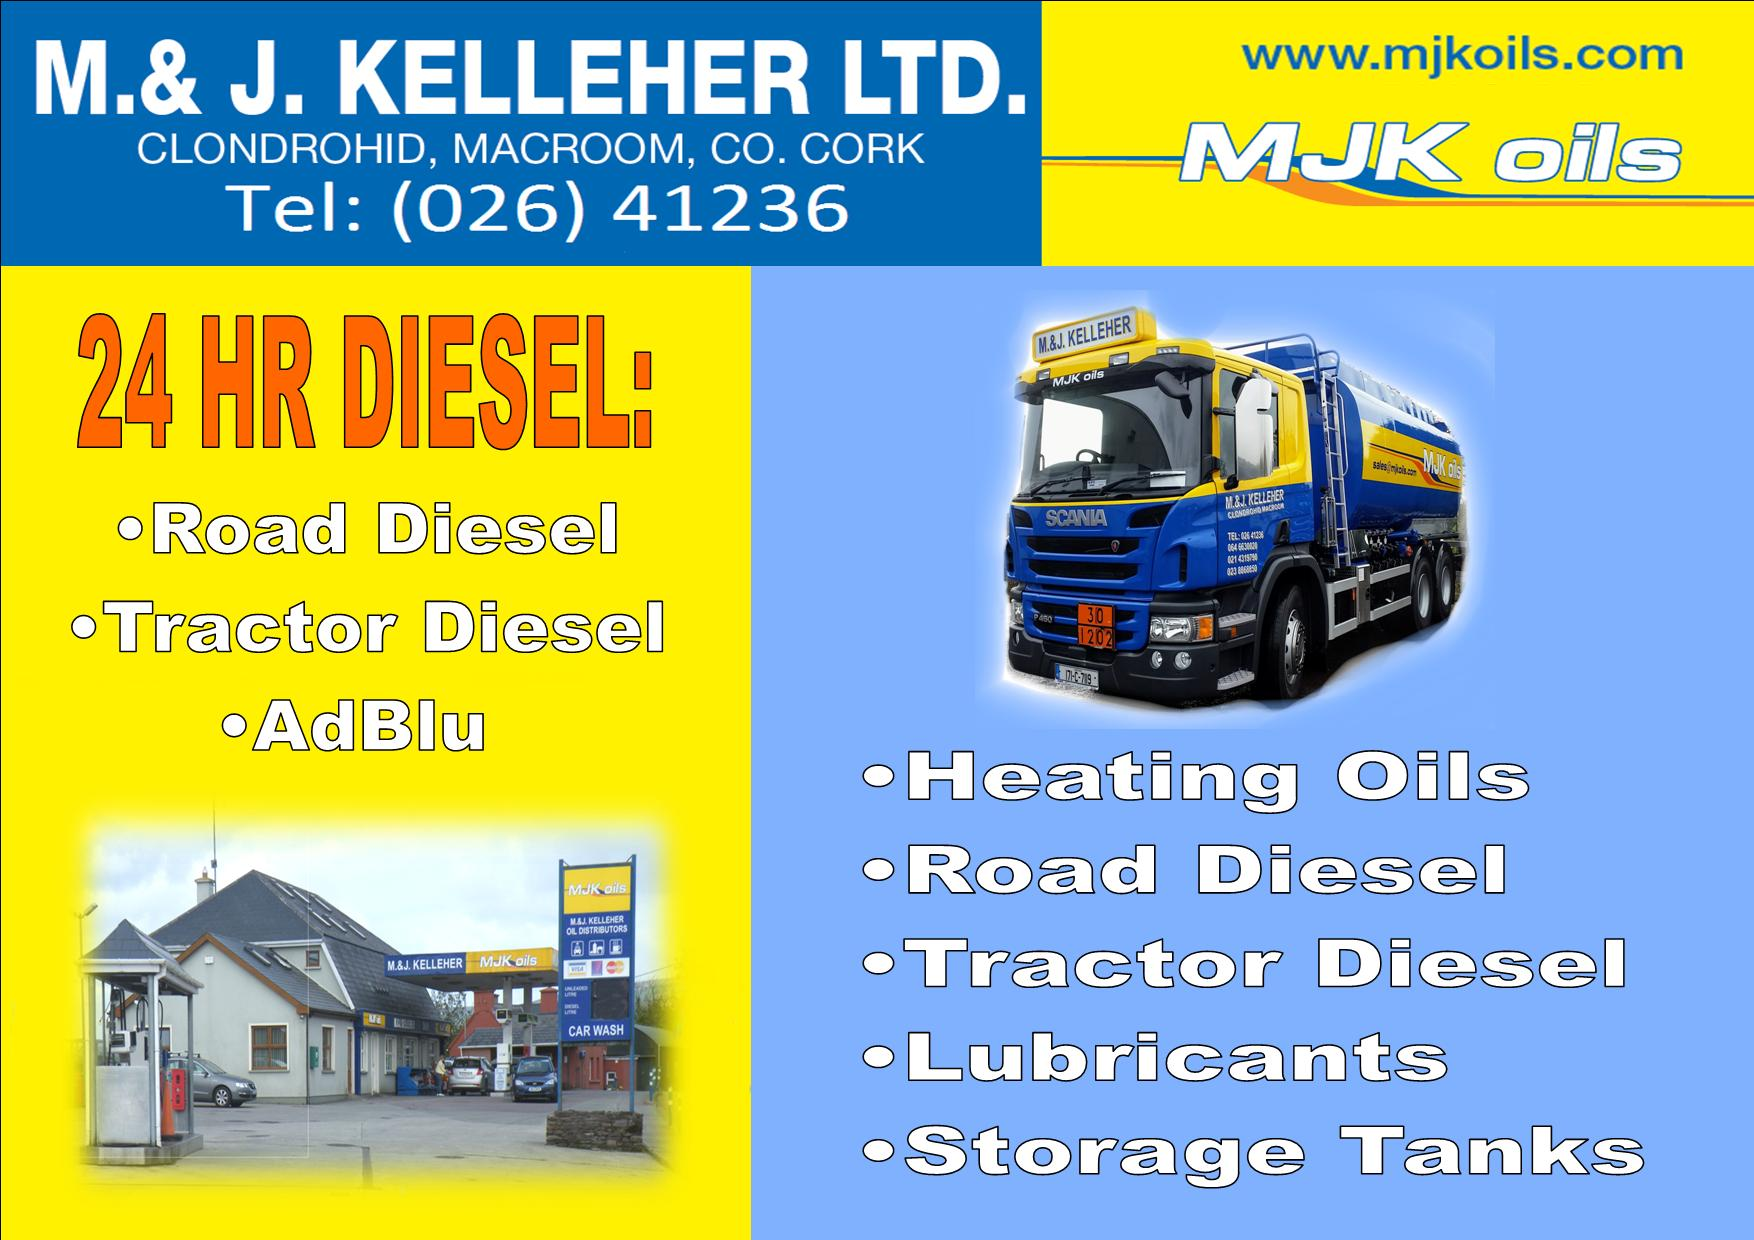 M&J Kelleher Ltd.